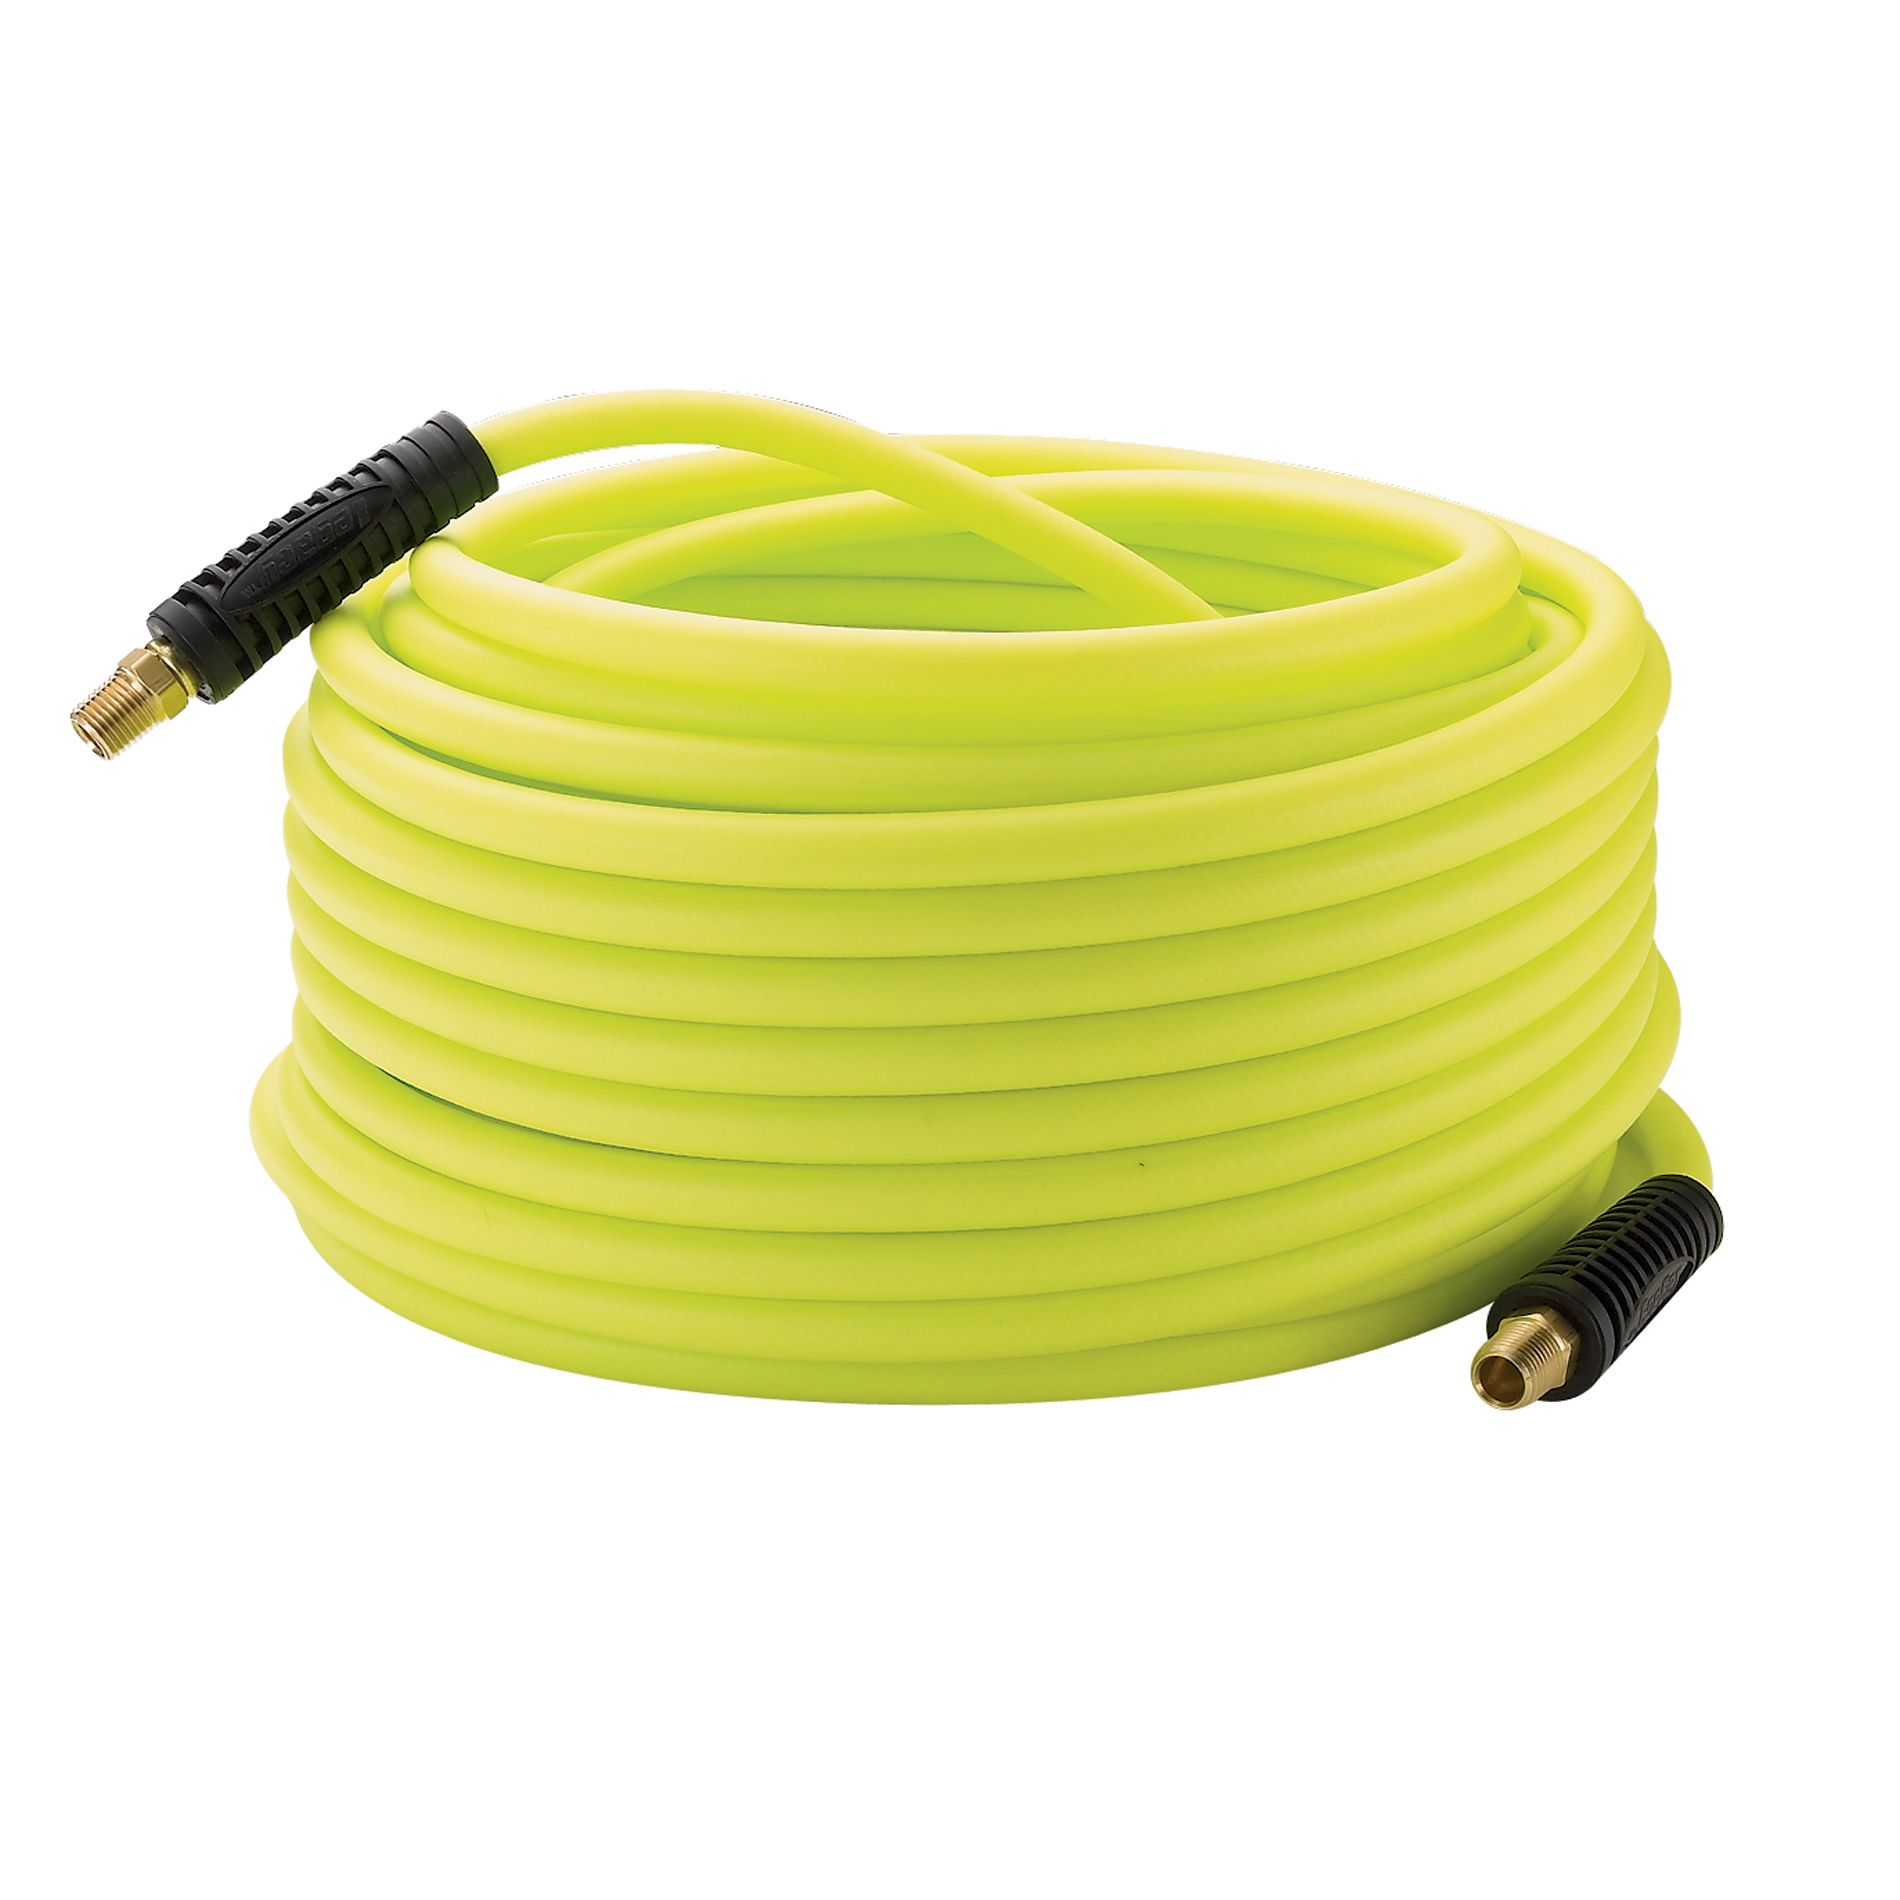 Flexilla The Monster 1/4-inch x 100-foot Air Hose